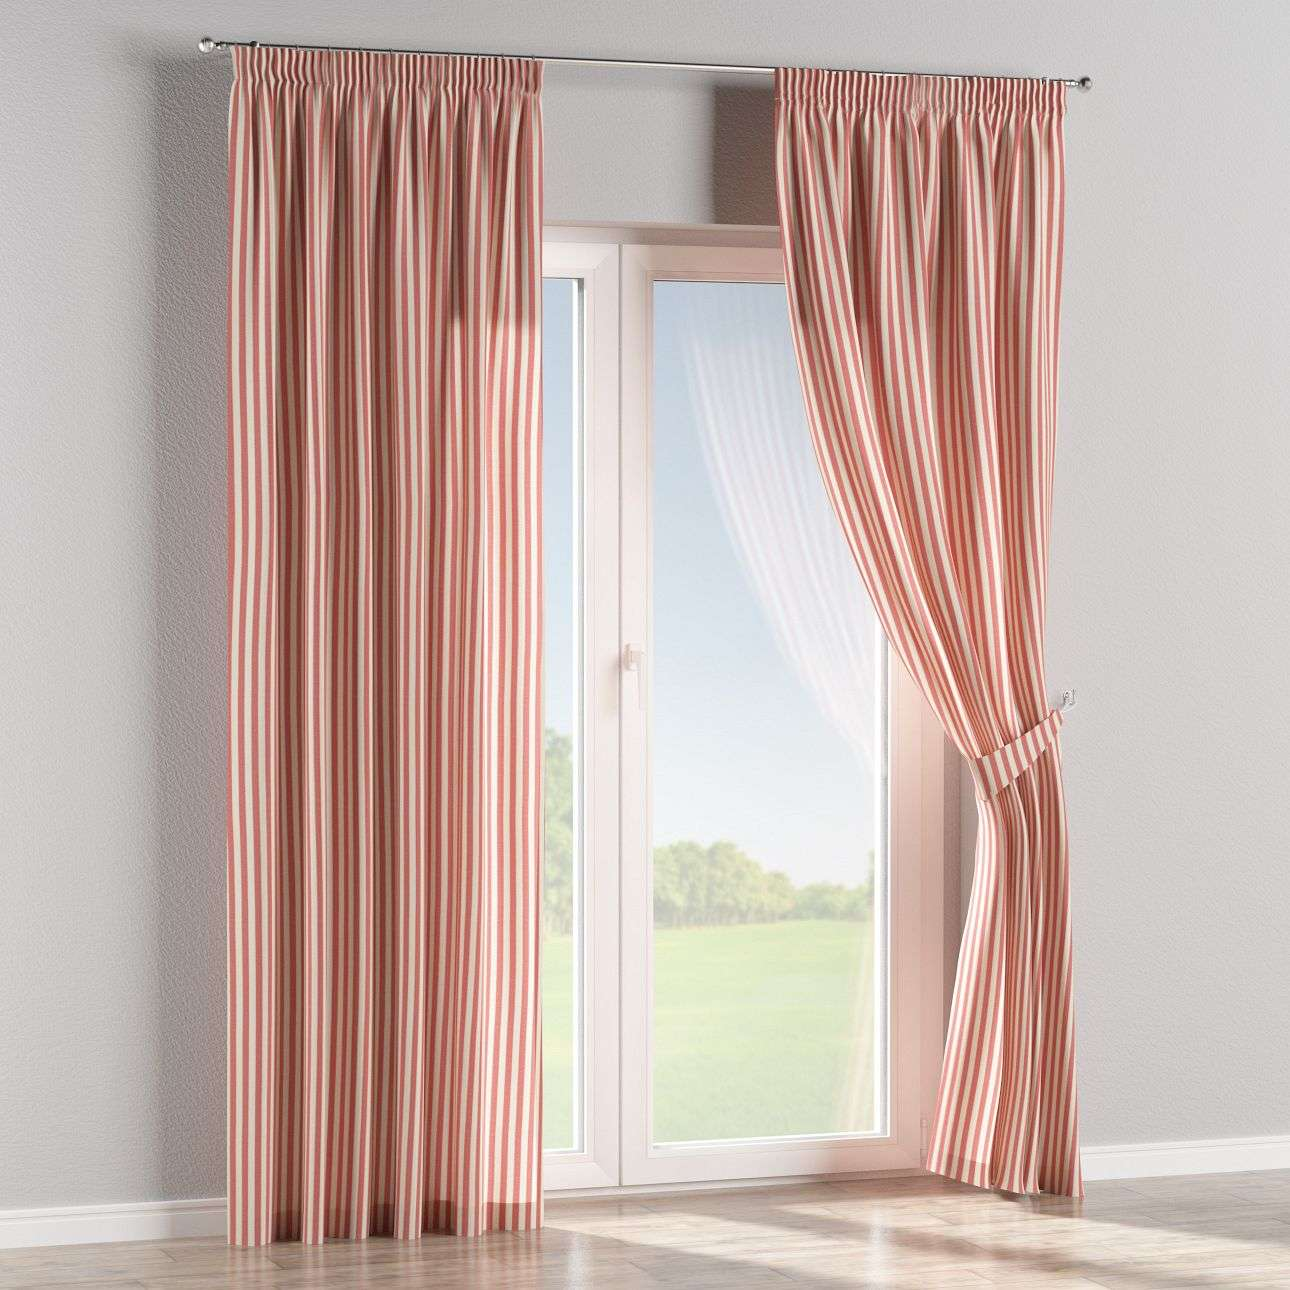 Pencil pleat curtains 130 x 260 cm (51 x 102 inch) in collection Quadro, fabric: 136-17